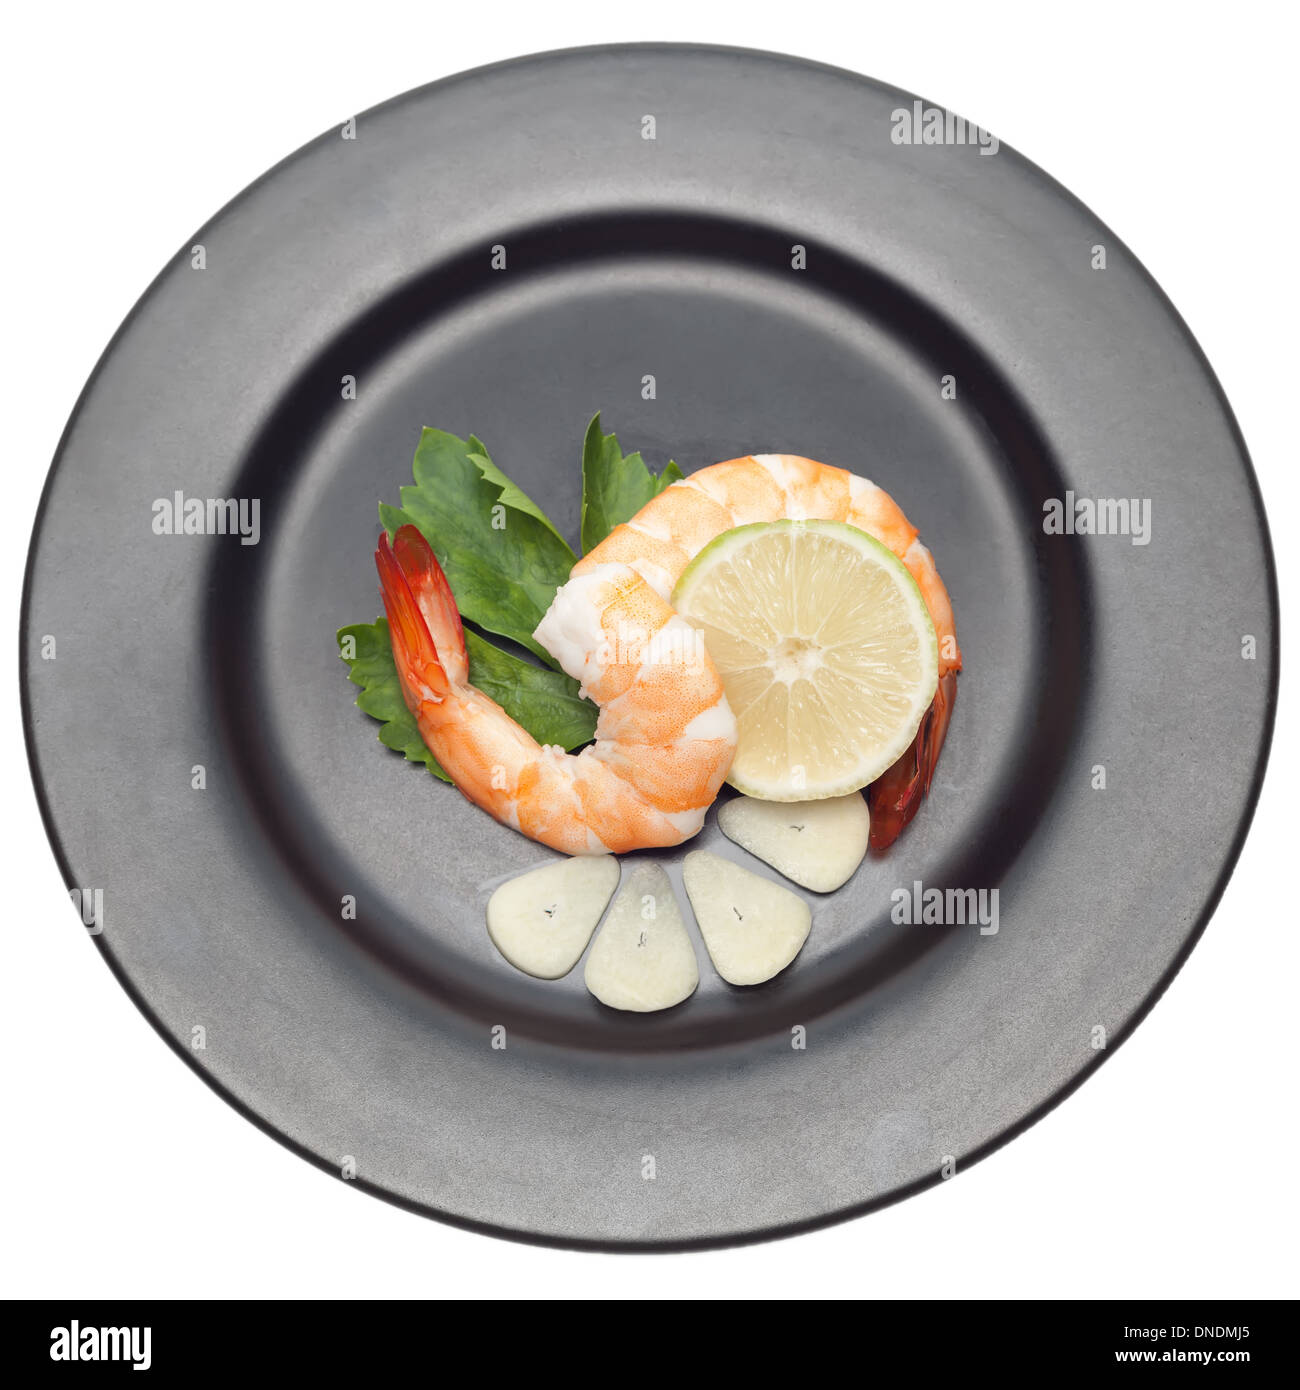 Shrimp with garlic and lime on black plate isolated on white backgorund Stock Photo